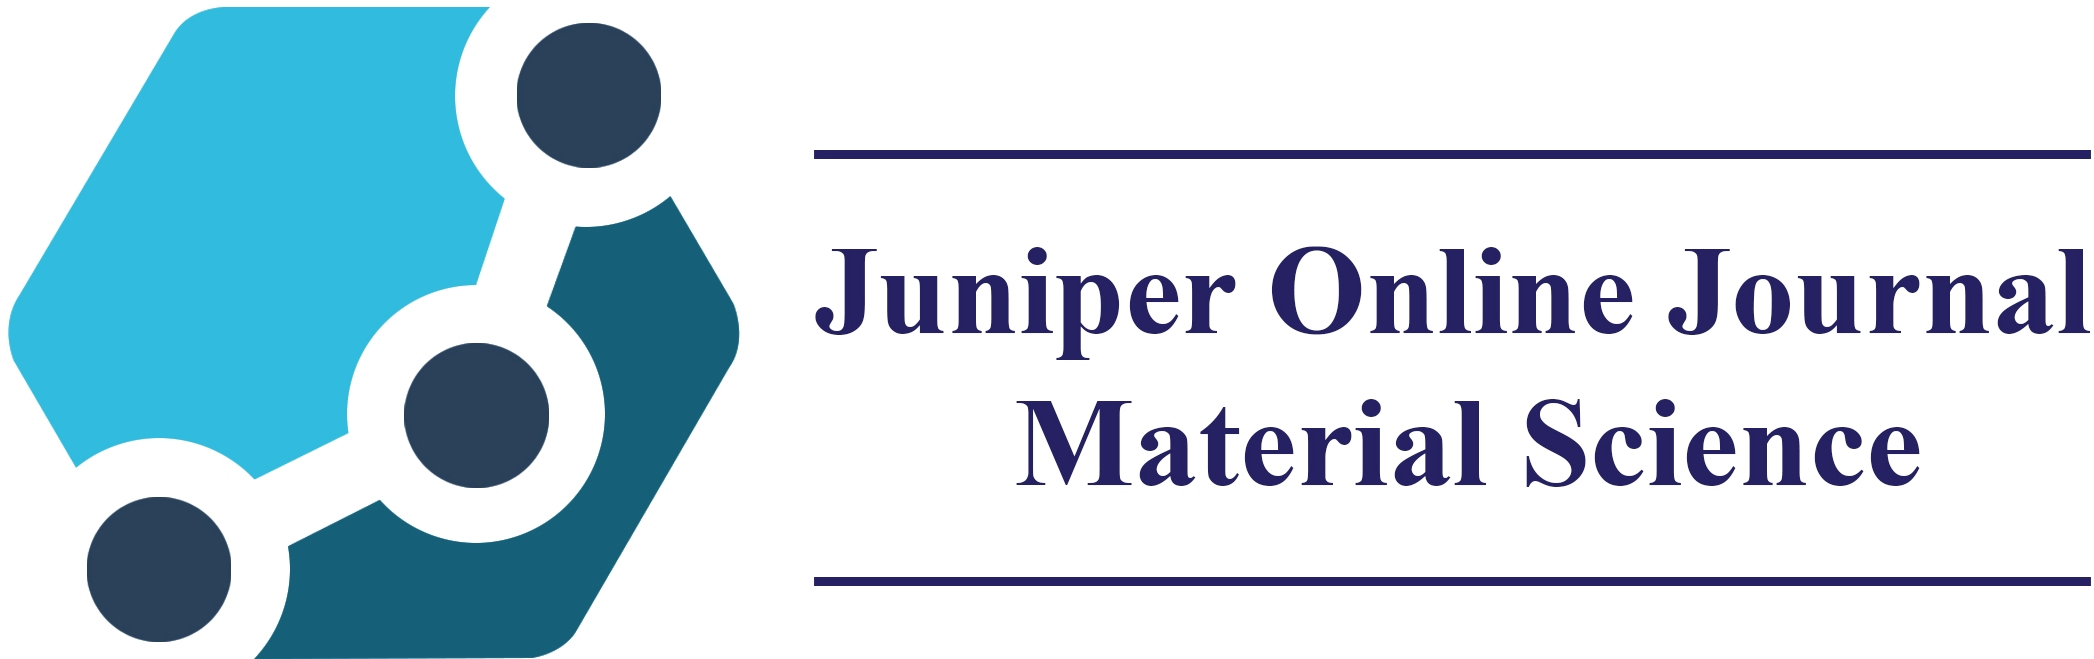 Juniper Publishers Agricultural Research & Technology: Open Access Journal